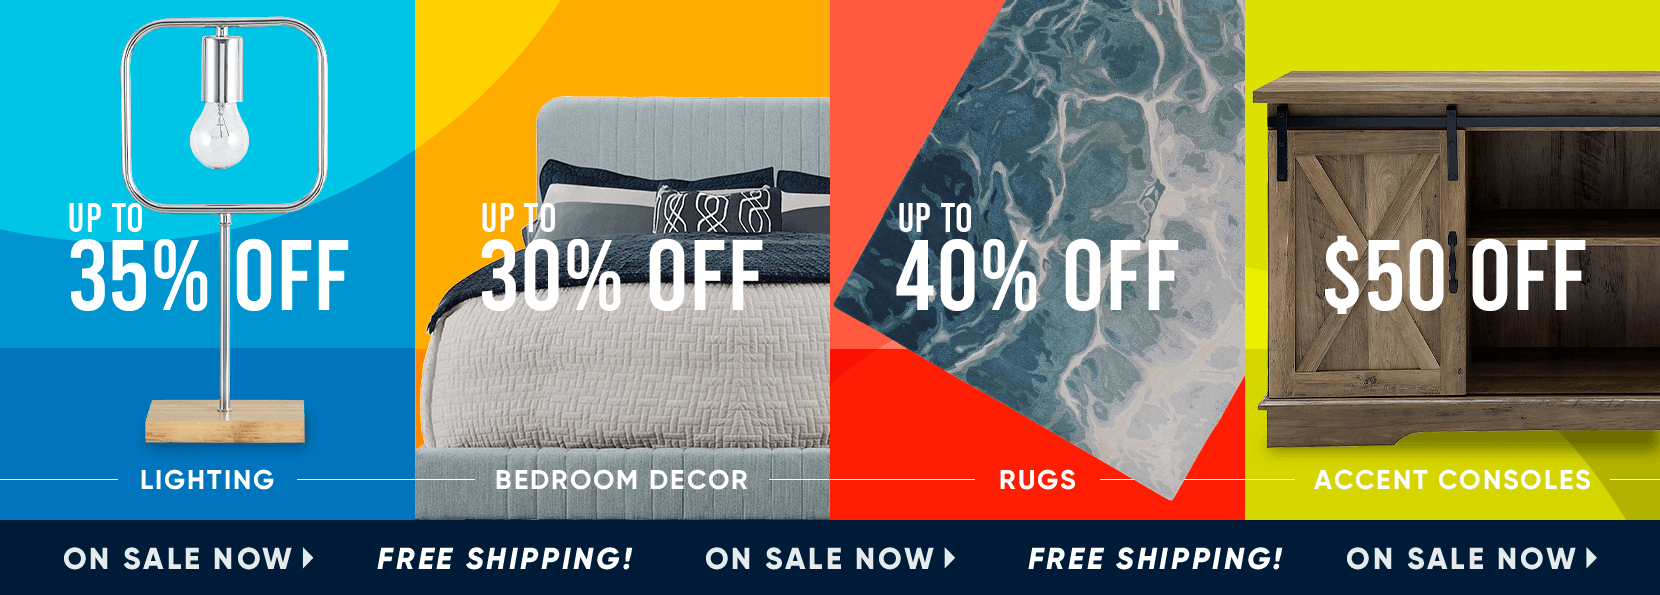 On sale now plus free shipping. 35% off lighting, 30% off bedroom decor, 40% off rugs, $50 off accent consoles